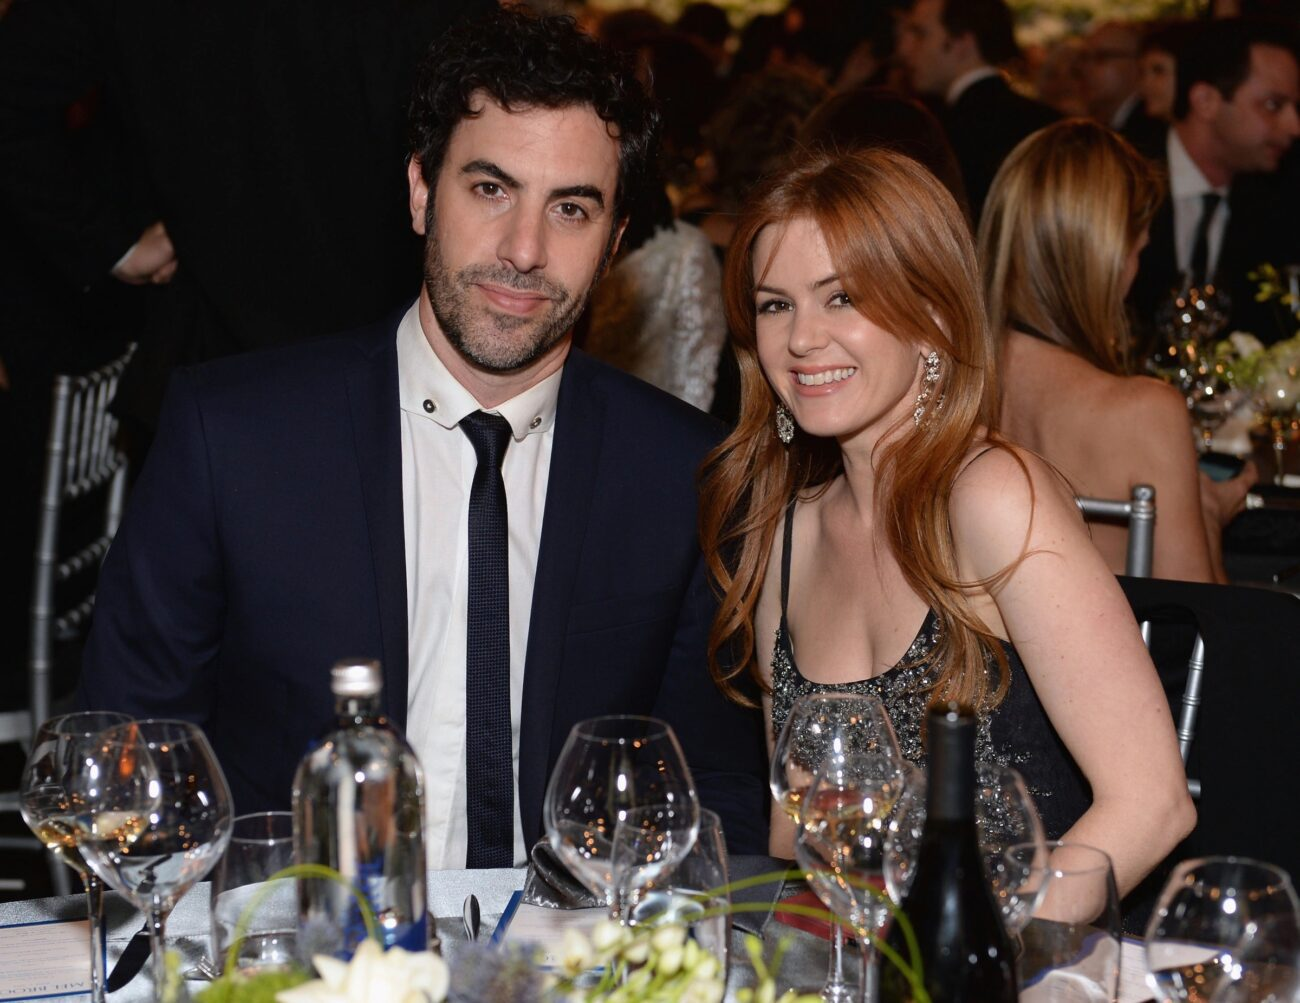 Sacha Baron Cohen and his wife Isla Fisher are known as one of Hollywood's funniest couples. So, why did they have to flee Sydney?